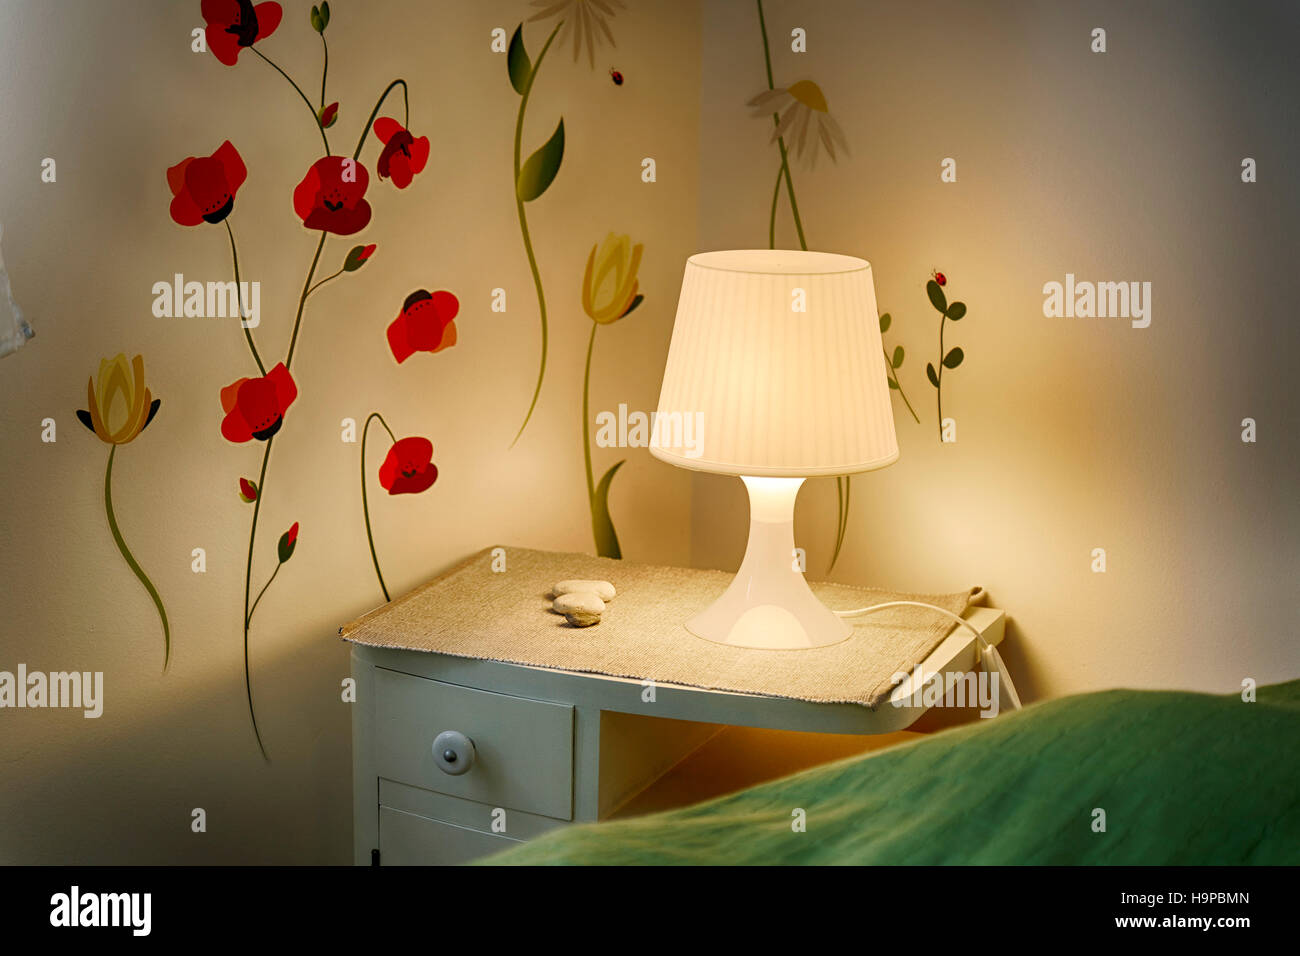 Wall Stickers Stock Photos & Wall Stickers Stock Images - Alamy